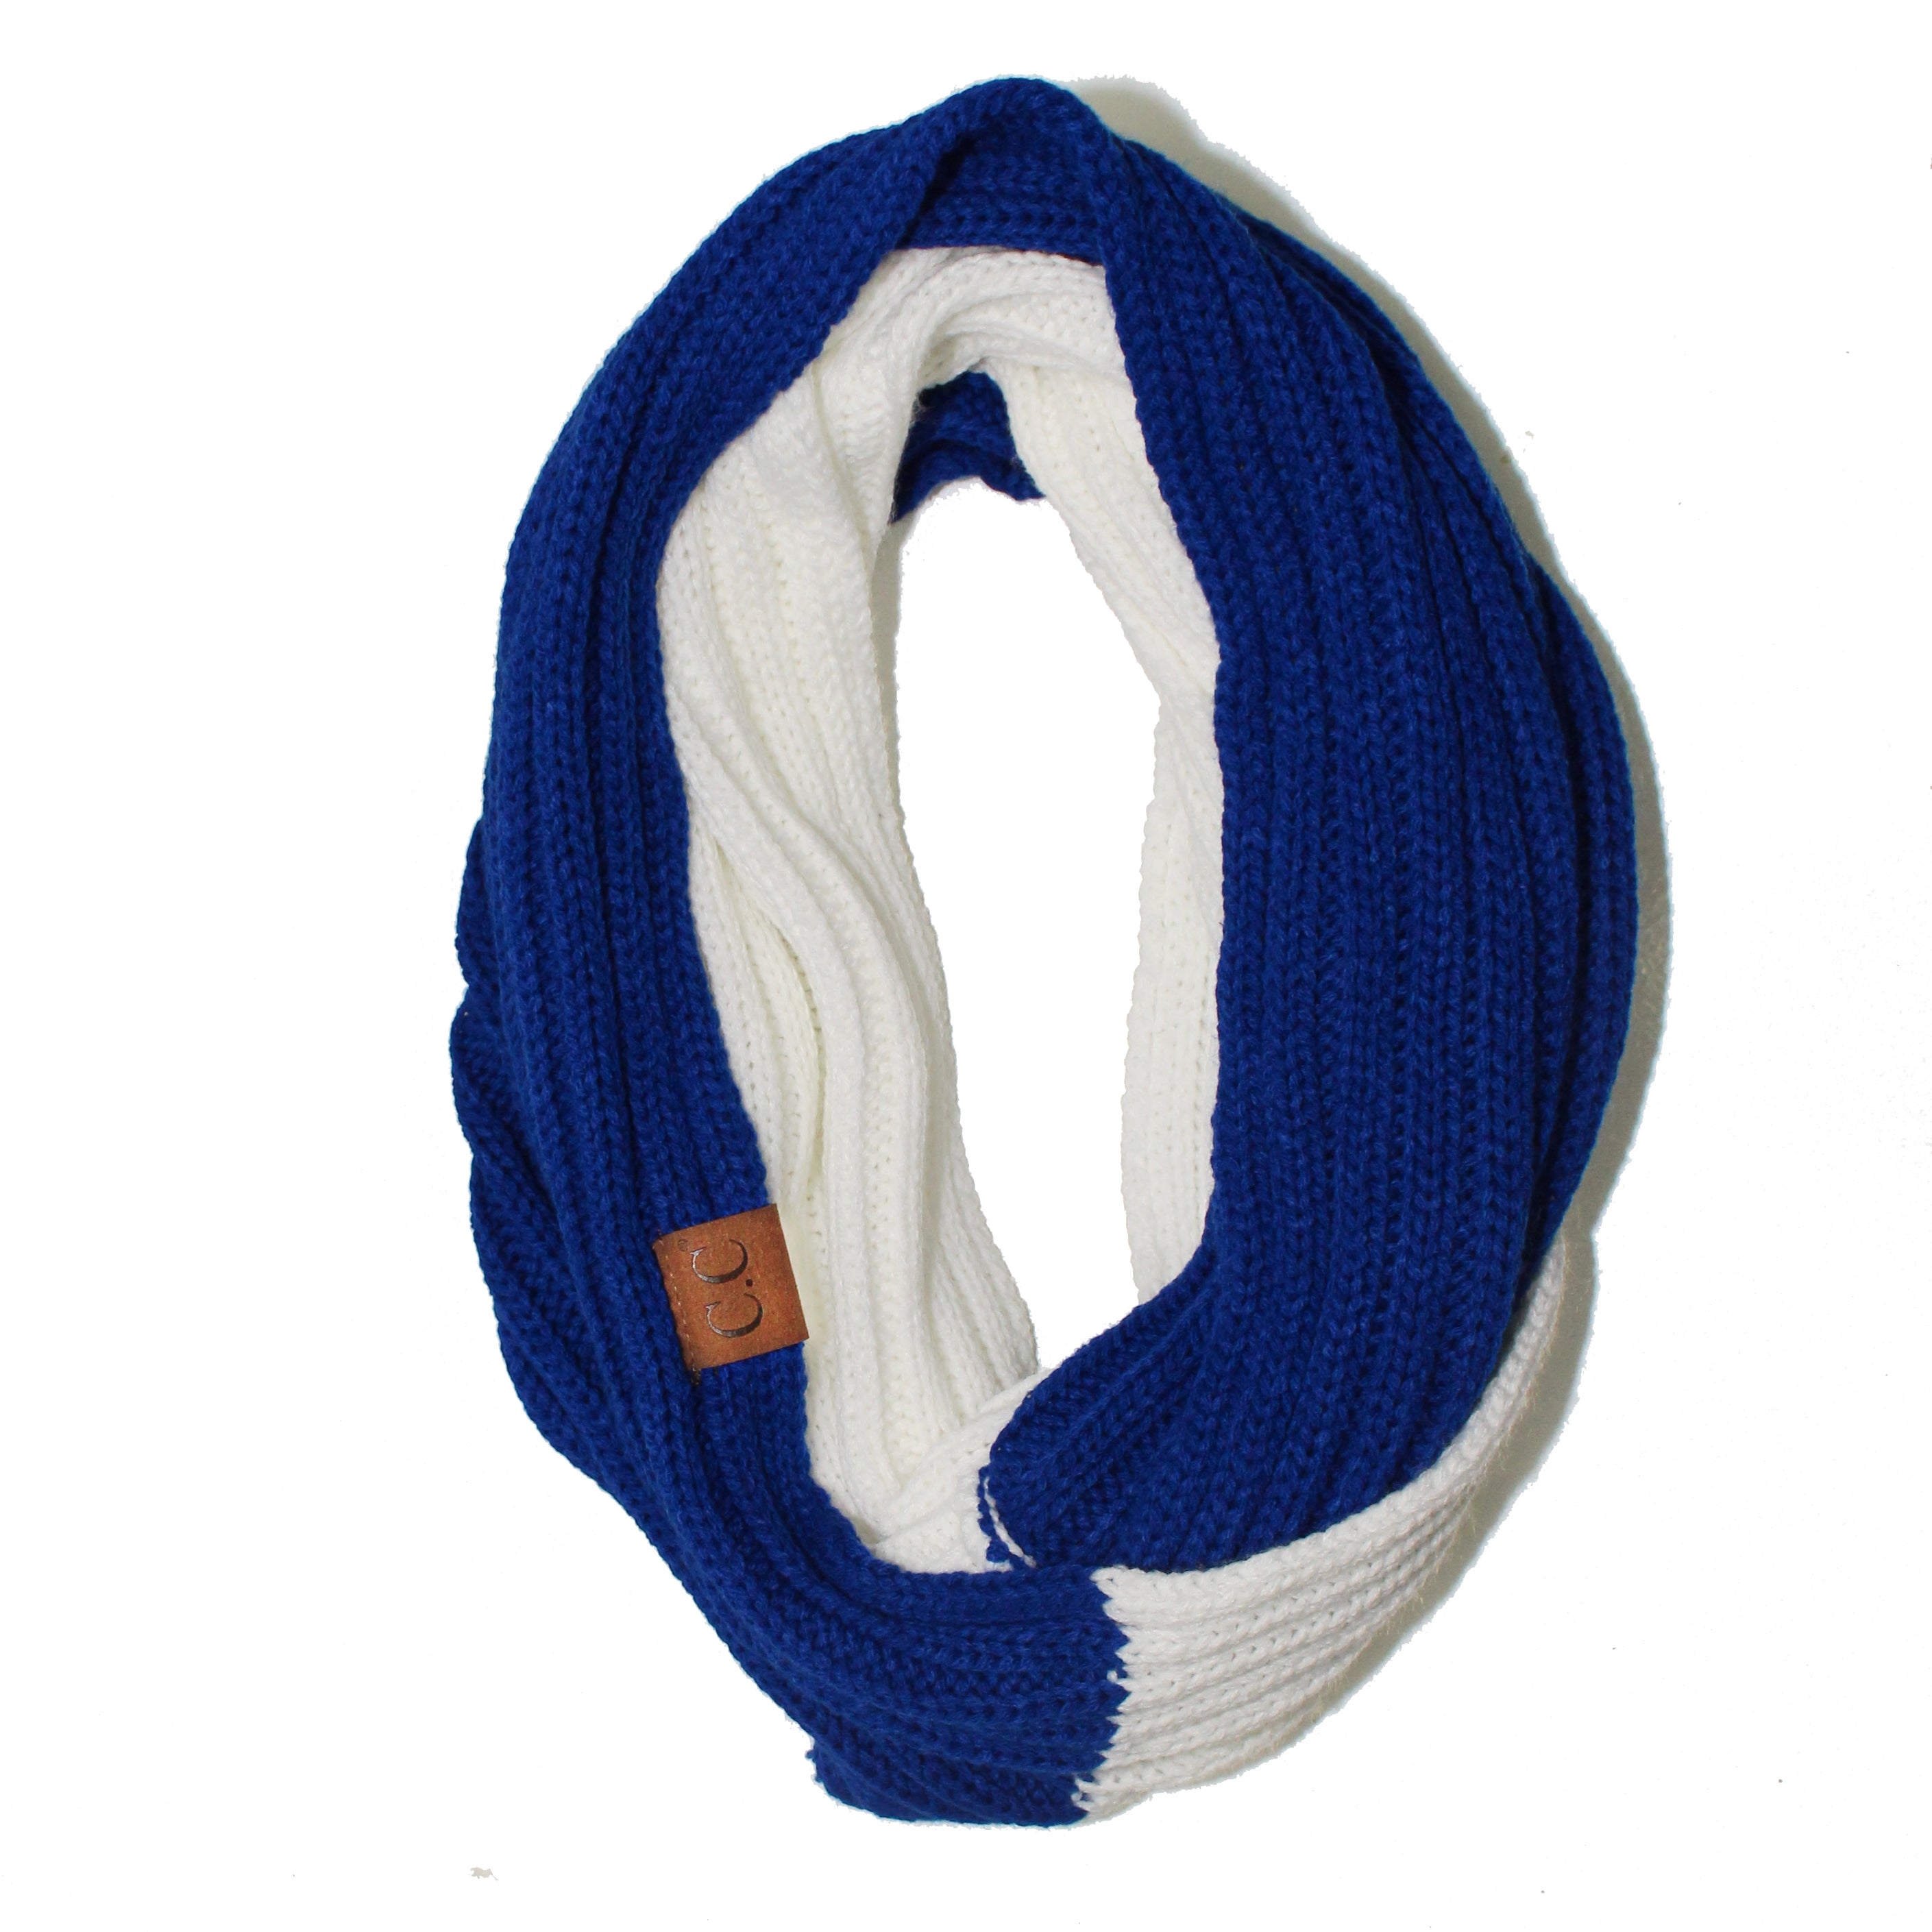 SF-56 Royal and White Team Infinty Scarf